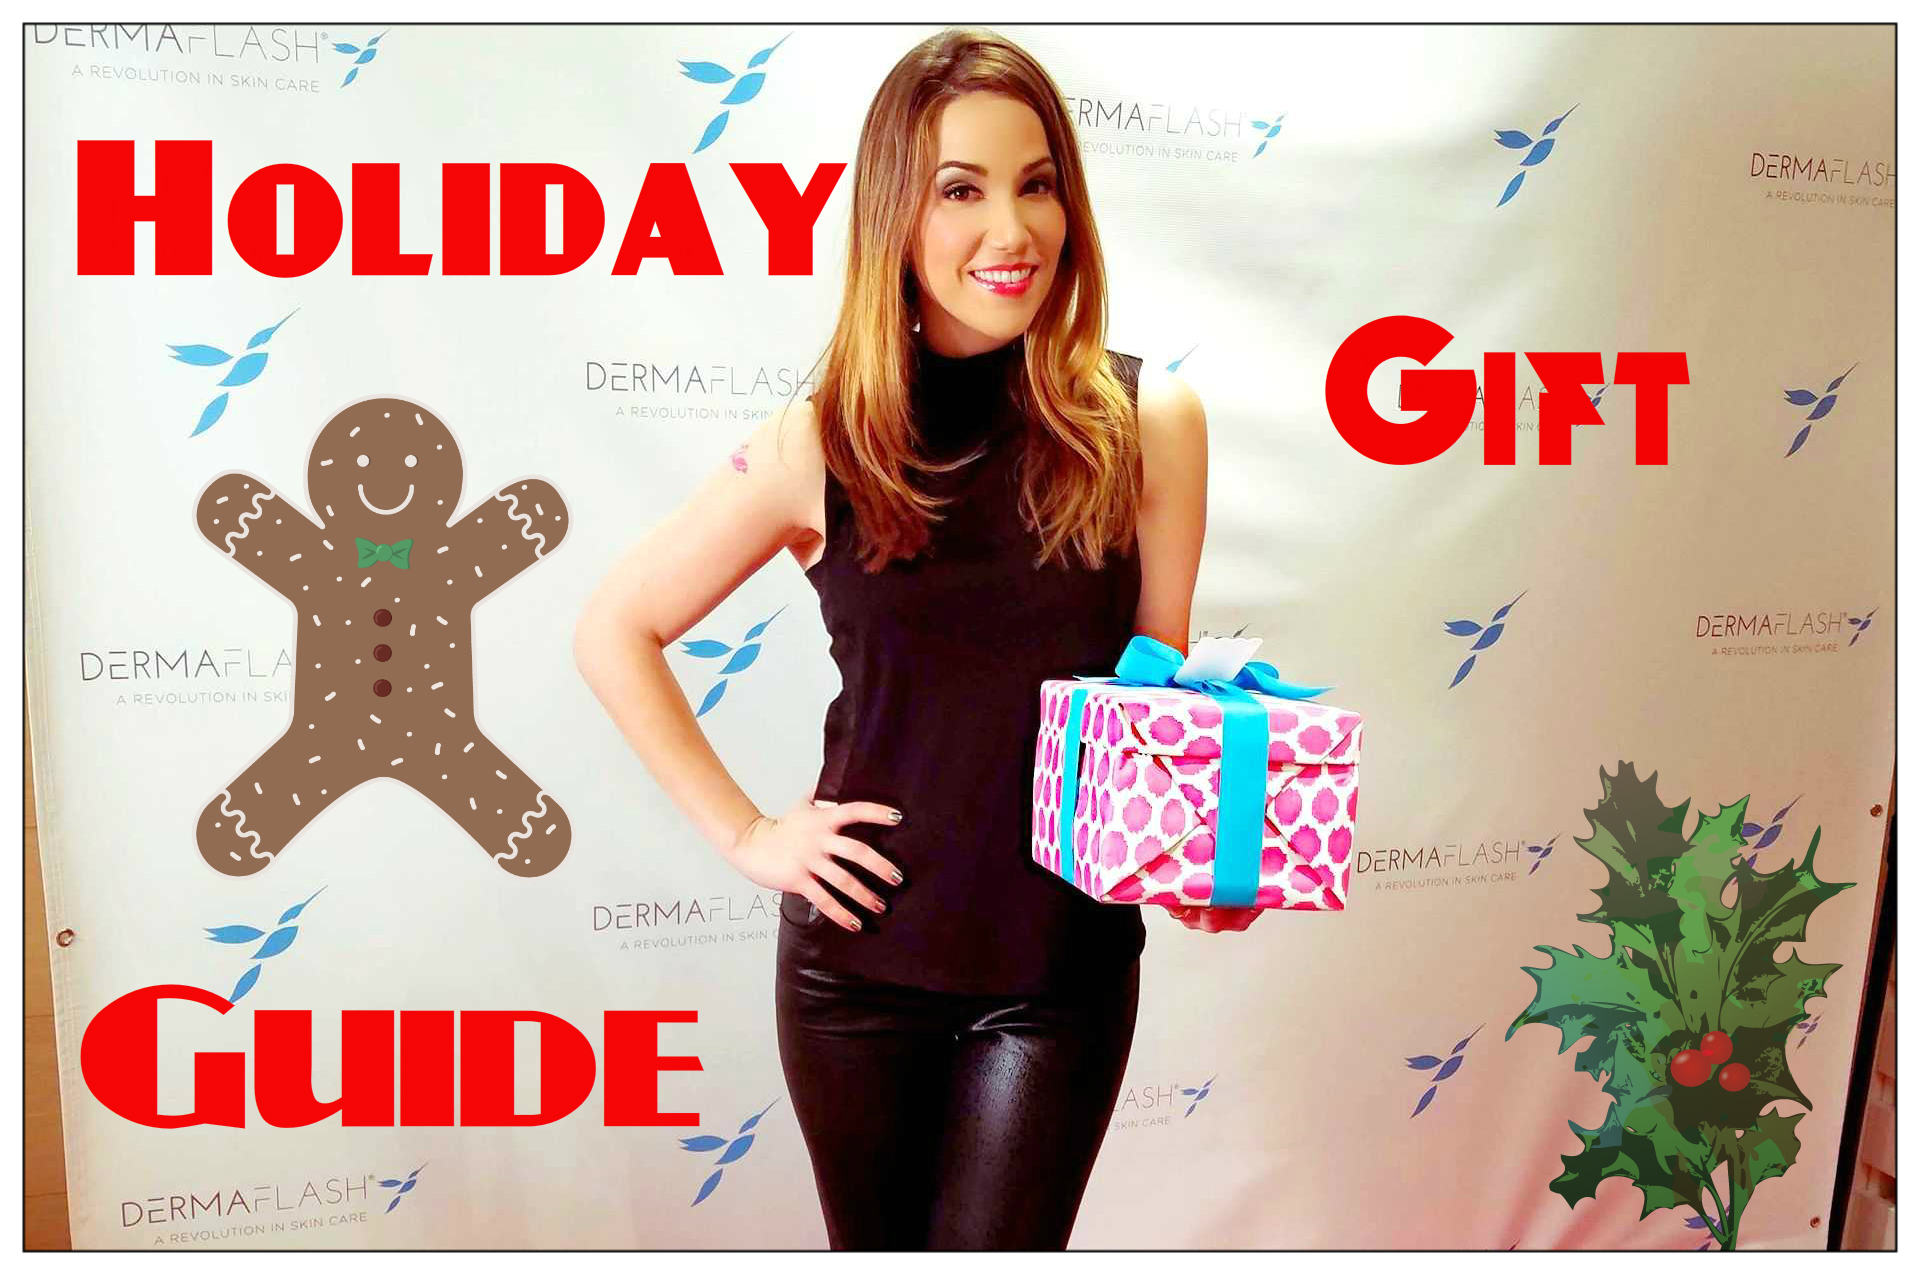 Last Minute Online Gift Guide for Everyone on Your List